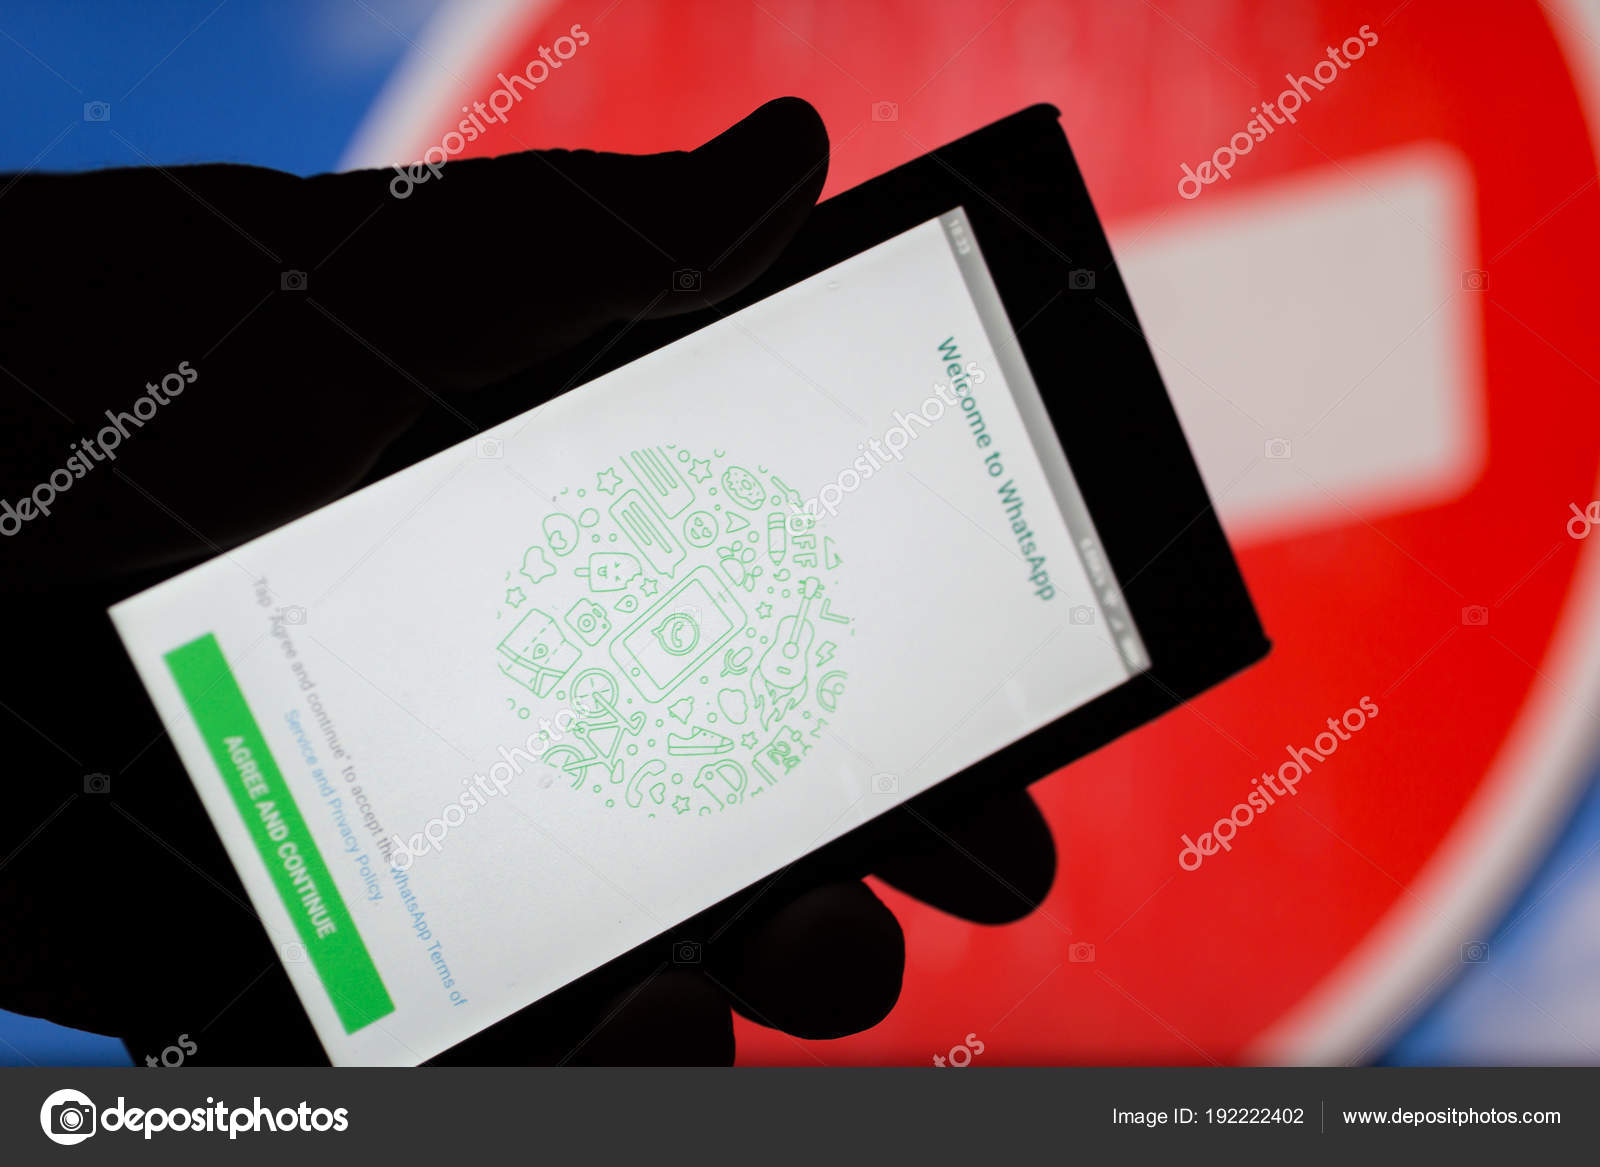 MOSCOW, RUSSIA - APRIL 16, 2018: Mobile phone with Whatsapp